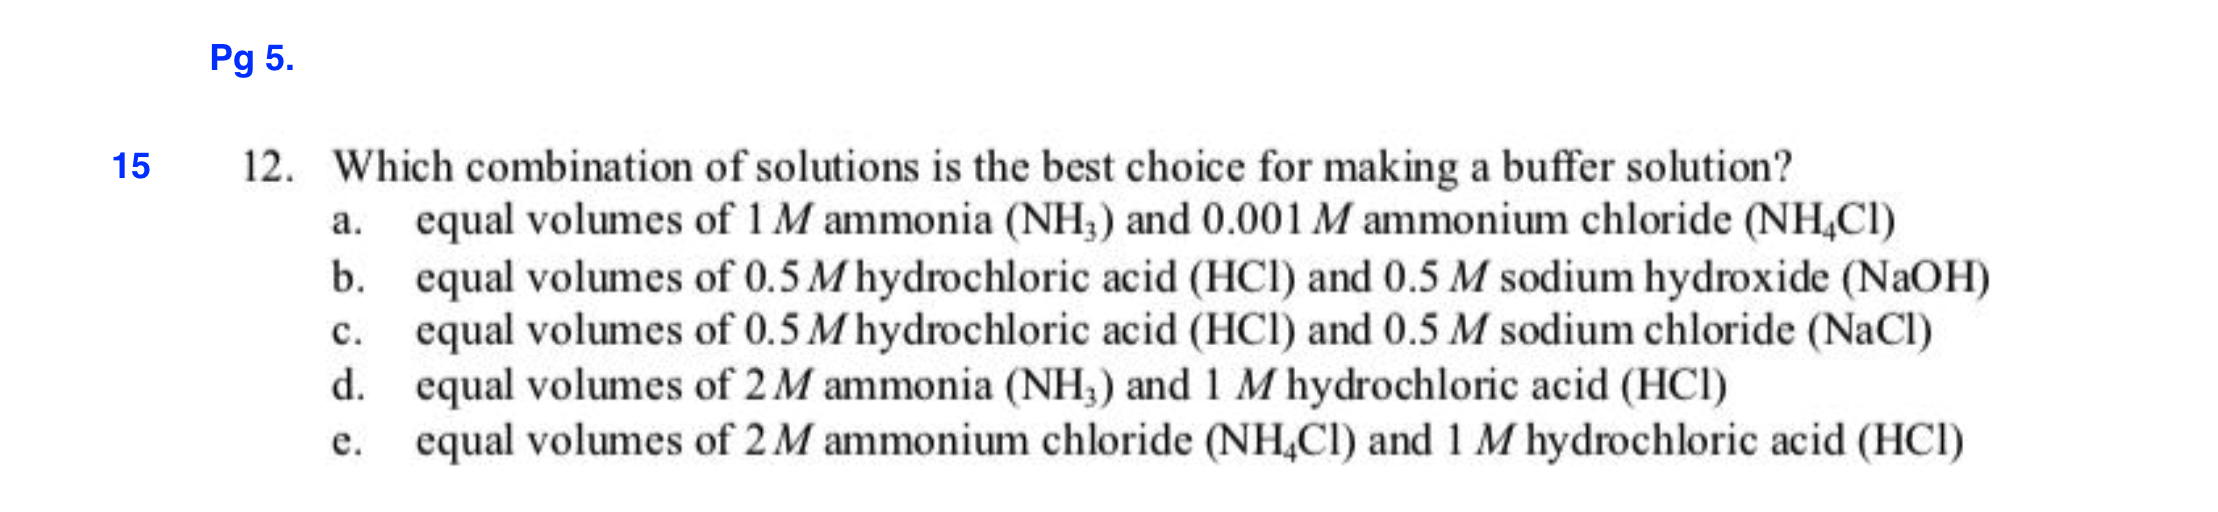 Pg 5. 12. Which combination of solutions is the best choice for making a buffer solution? 15 equal volumes of 1 M ammonia (NH) and 0.001 M ammonium chloride (NHCI) equal volumes of 0.5 M hydrochloric acid (HCl) and 0.5 M sodium hydroxide (NaOH) equal volumes of 0.5 M hydrochloric acid (HCl) and 0.5 M sodium chloride (NaCl) equal volumes of 2M ammonia (NH) and 1 M hydrochloric acid (HCI) equal volumes of 2 M ammonium chloride (NH,CI) and 1 M hydrochloric acid (HCI) а. b. с. d. е.